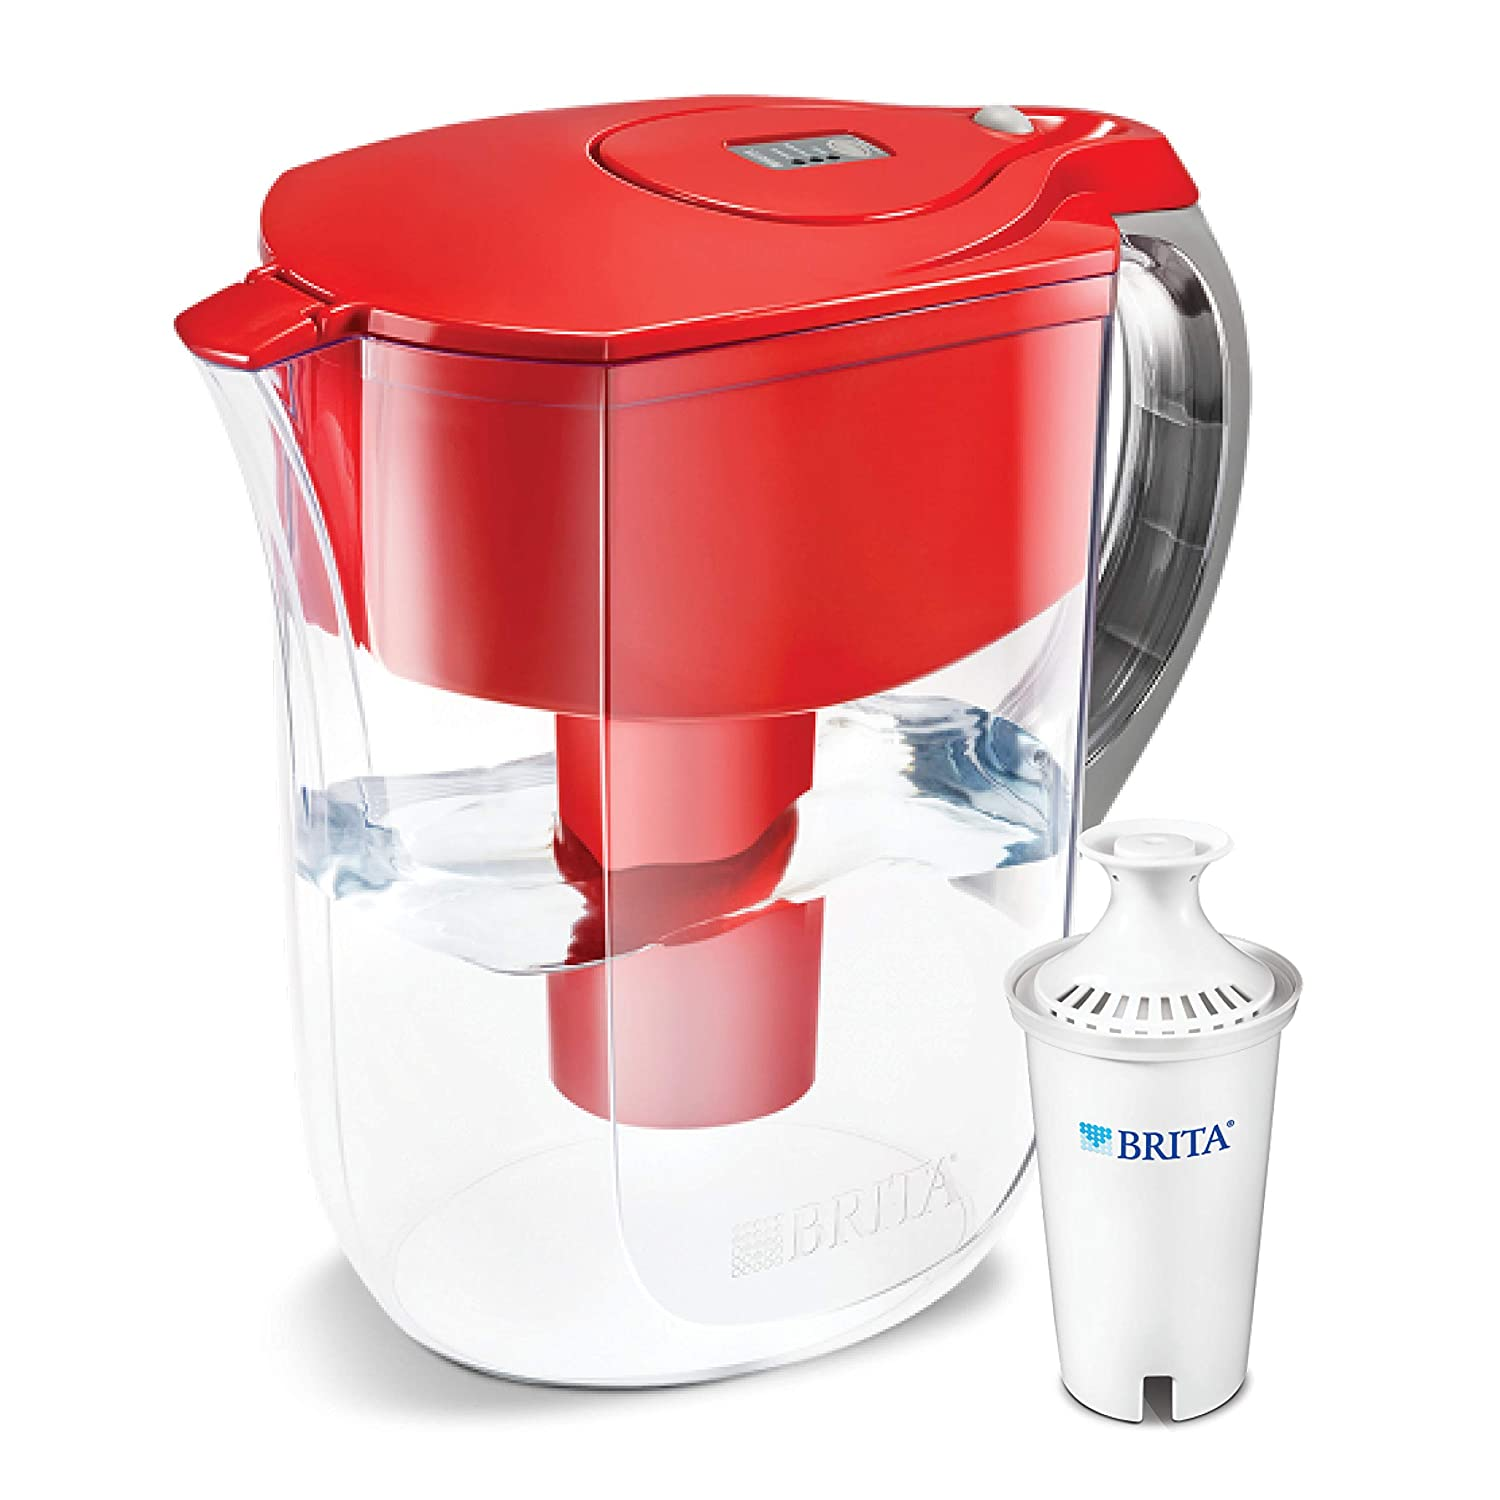 Brita Grand Water Filter Pitcher, Red, 10 Cup 10 Cup 10060258356585